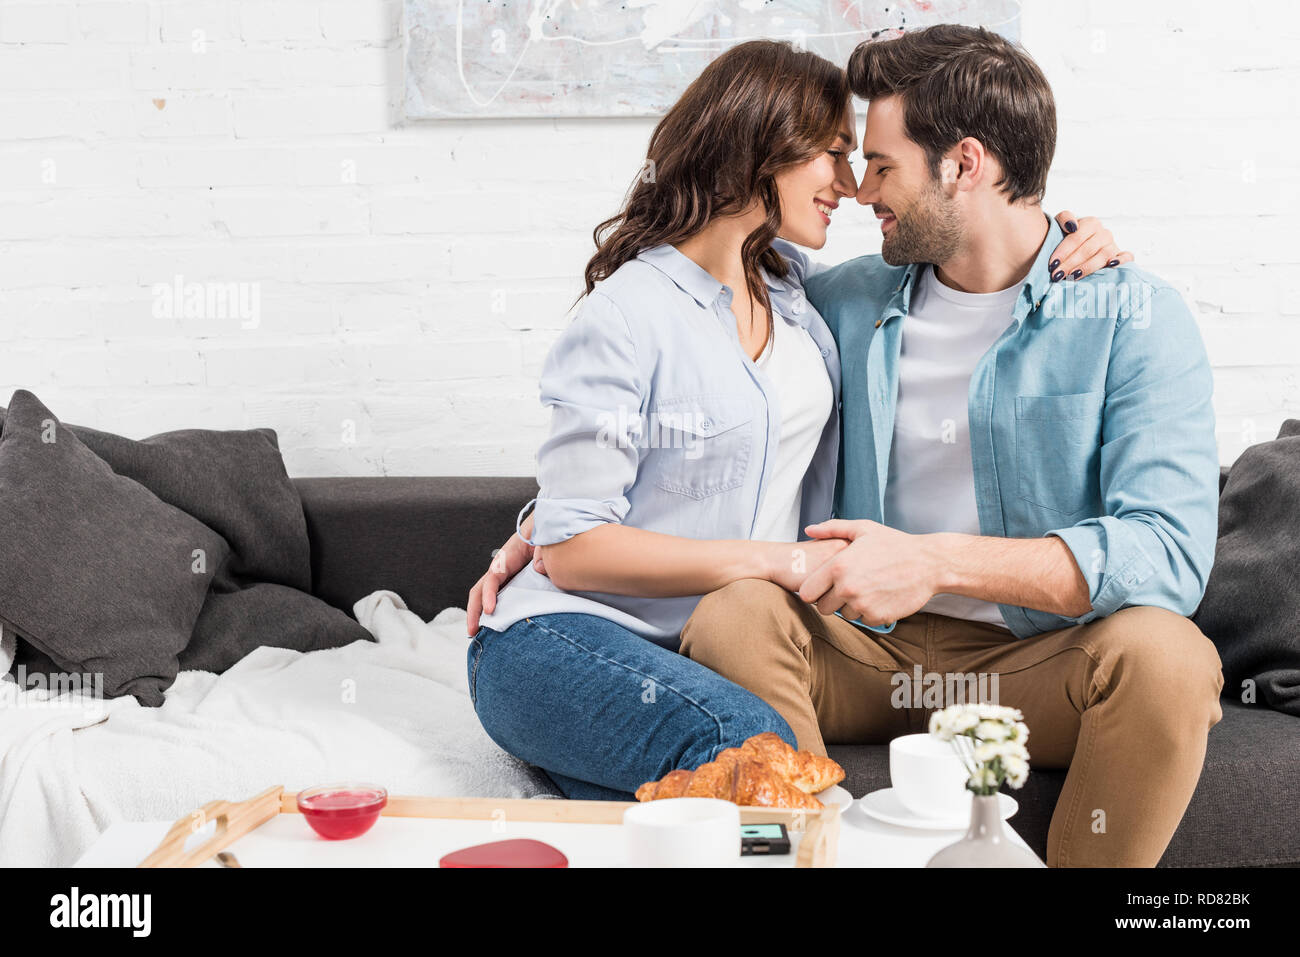 couple sitting on couch and tenderly embracing while having breakfast at home - Stock Image